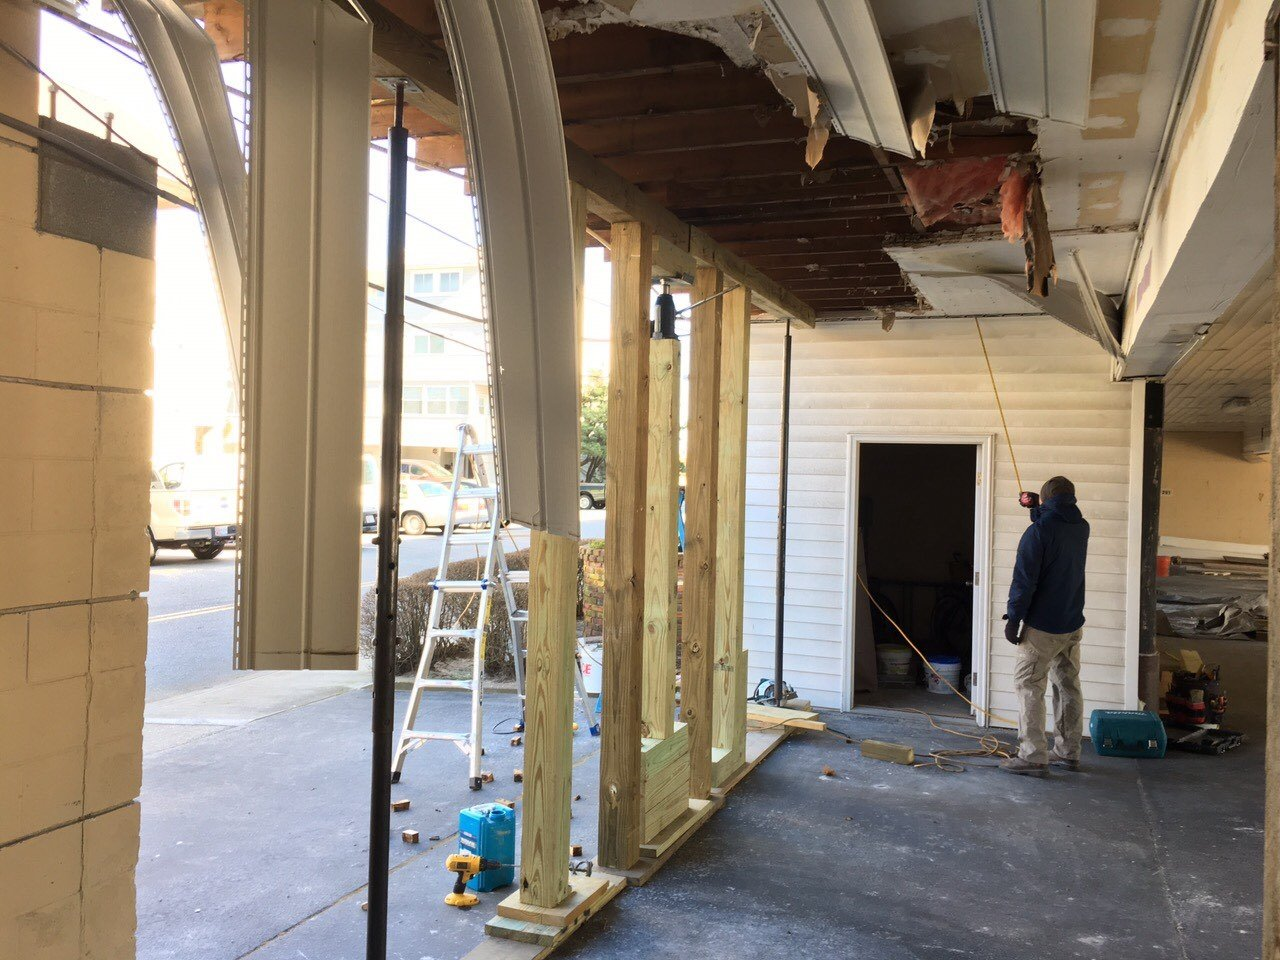 4-A-place-in-the-sun-Ocean-City-structural-repairs.jpg